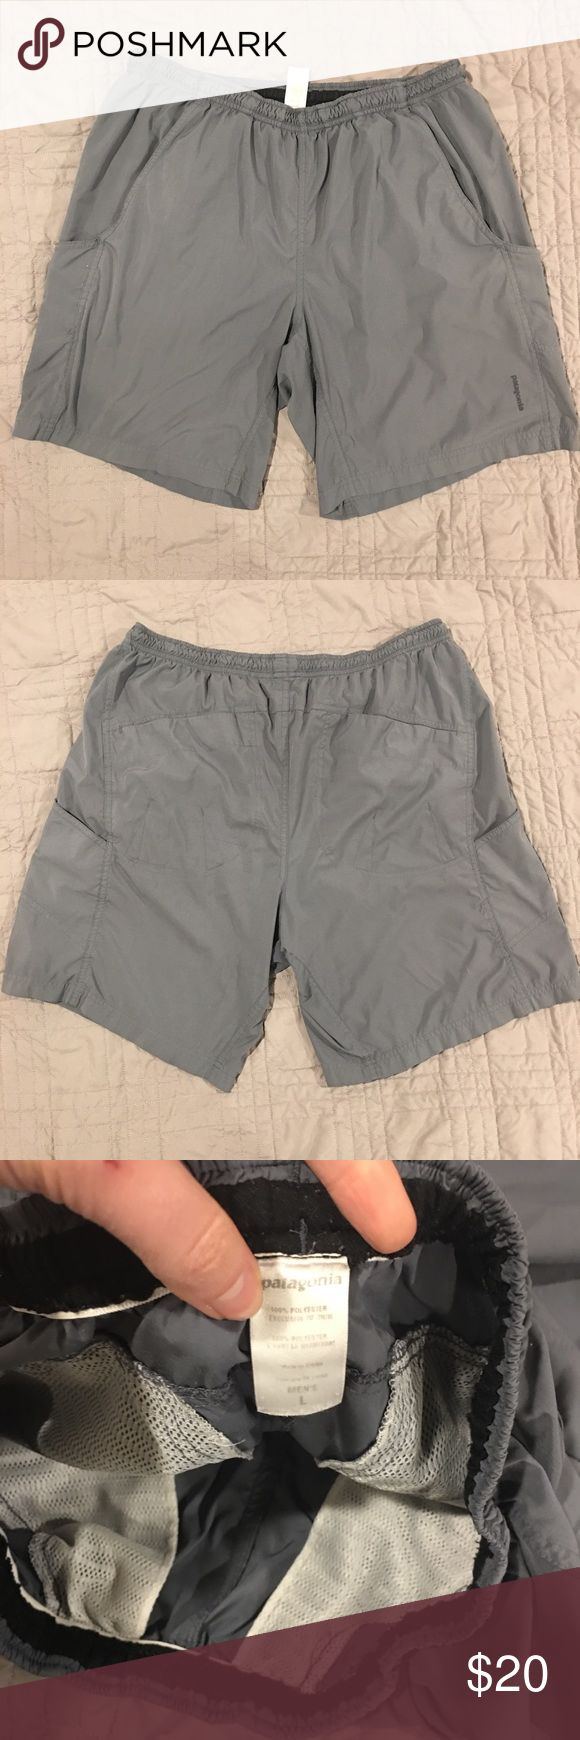 Men's Patagonia Shorts Men's Patagonia shorts in good used condition. 100% polyester. Patagonia Shorts